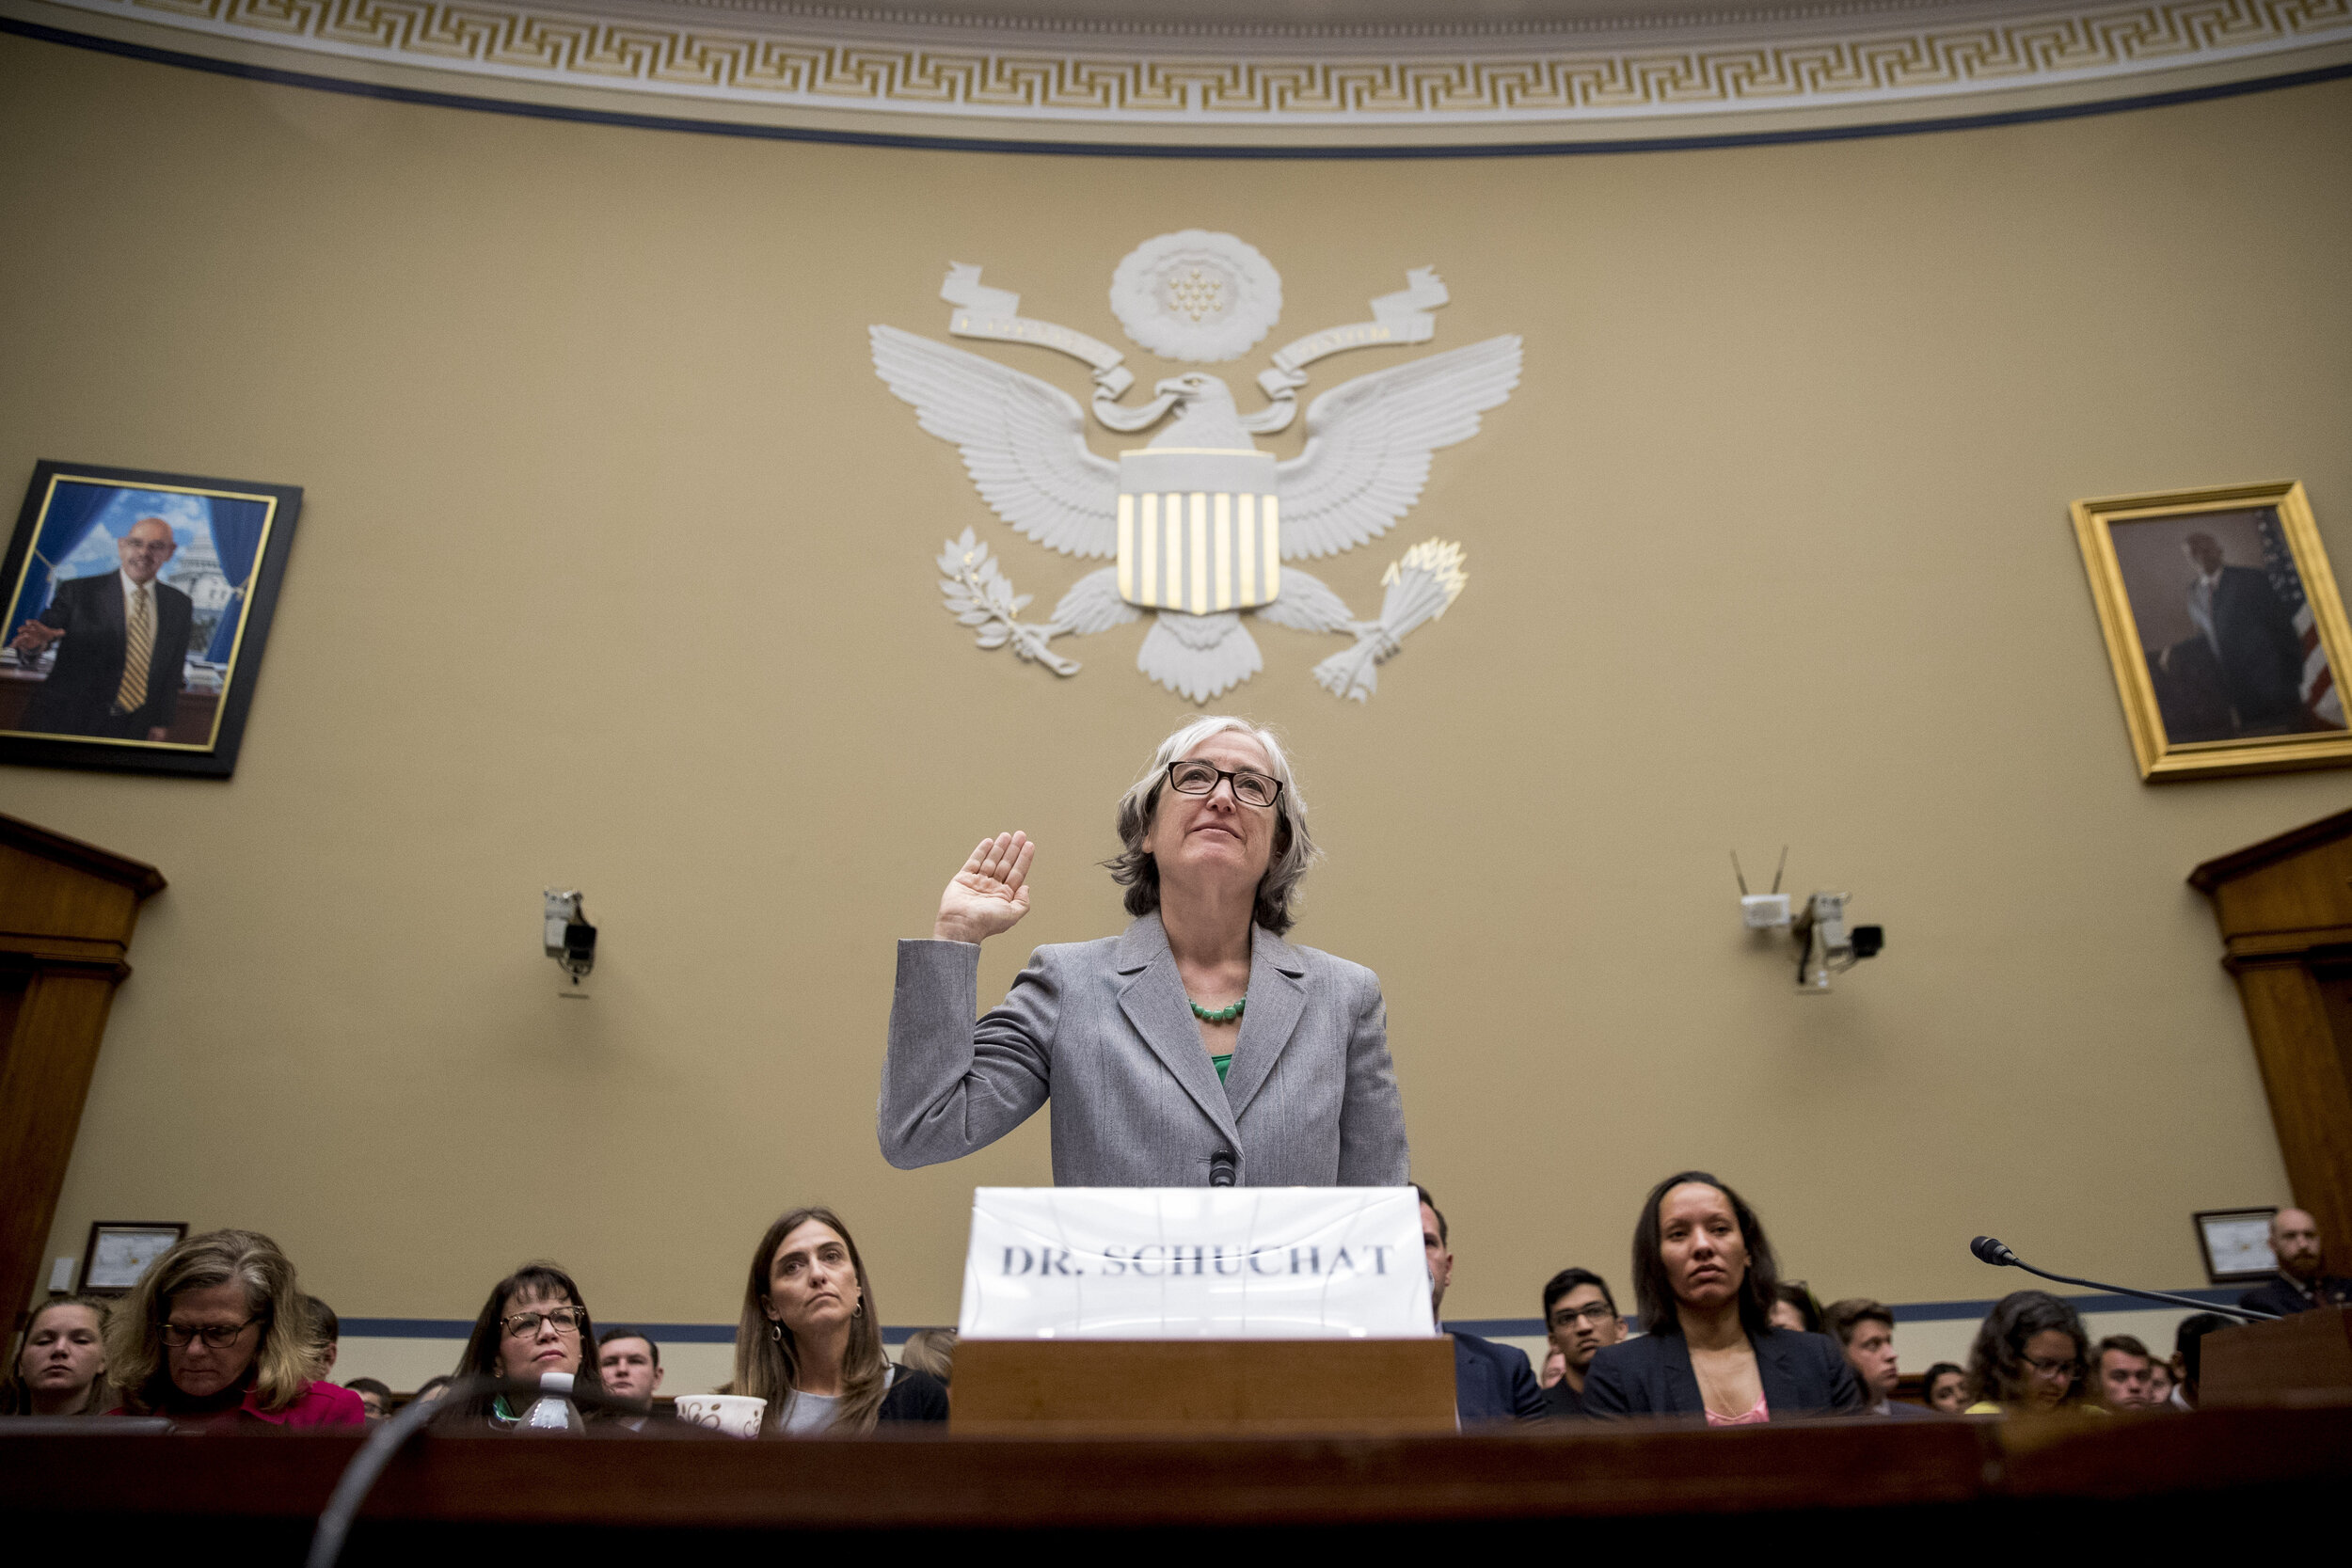 CDC Principal Deputy Secretary Dr Anne Schuchat is sworn in as she appears before a House Oversight subcommittee hearing on lung disease and e-cigarettes on Capitol Hill in Washington on Tuesday, Sept. 24, 2019. (AP Photo/Andrew Harnik)